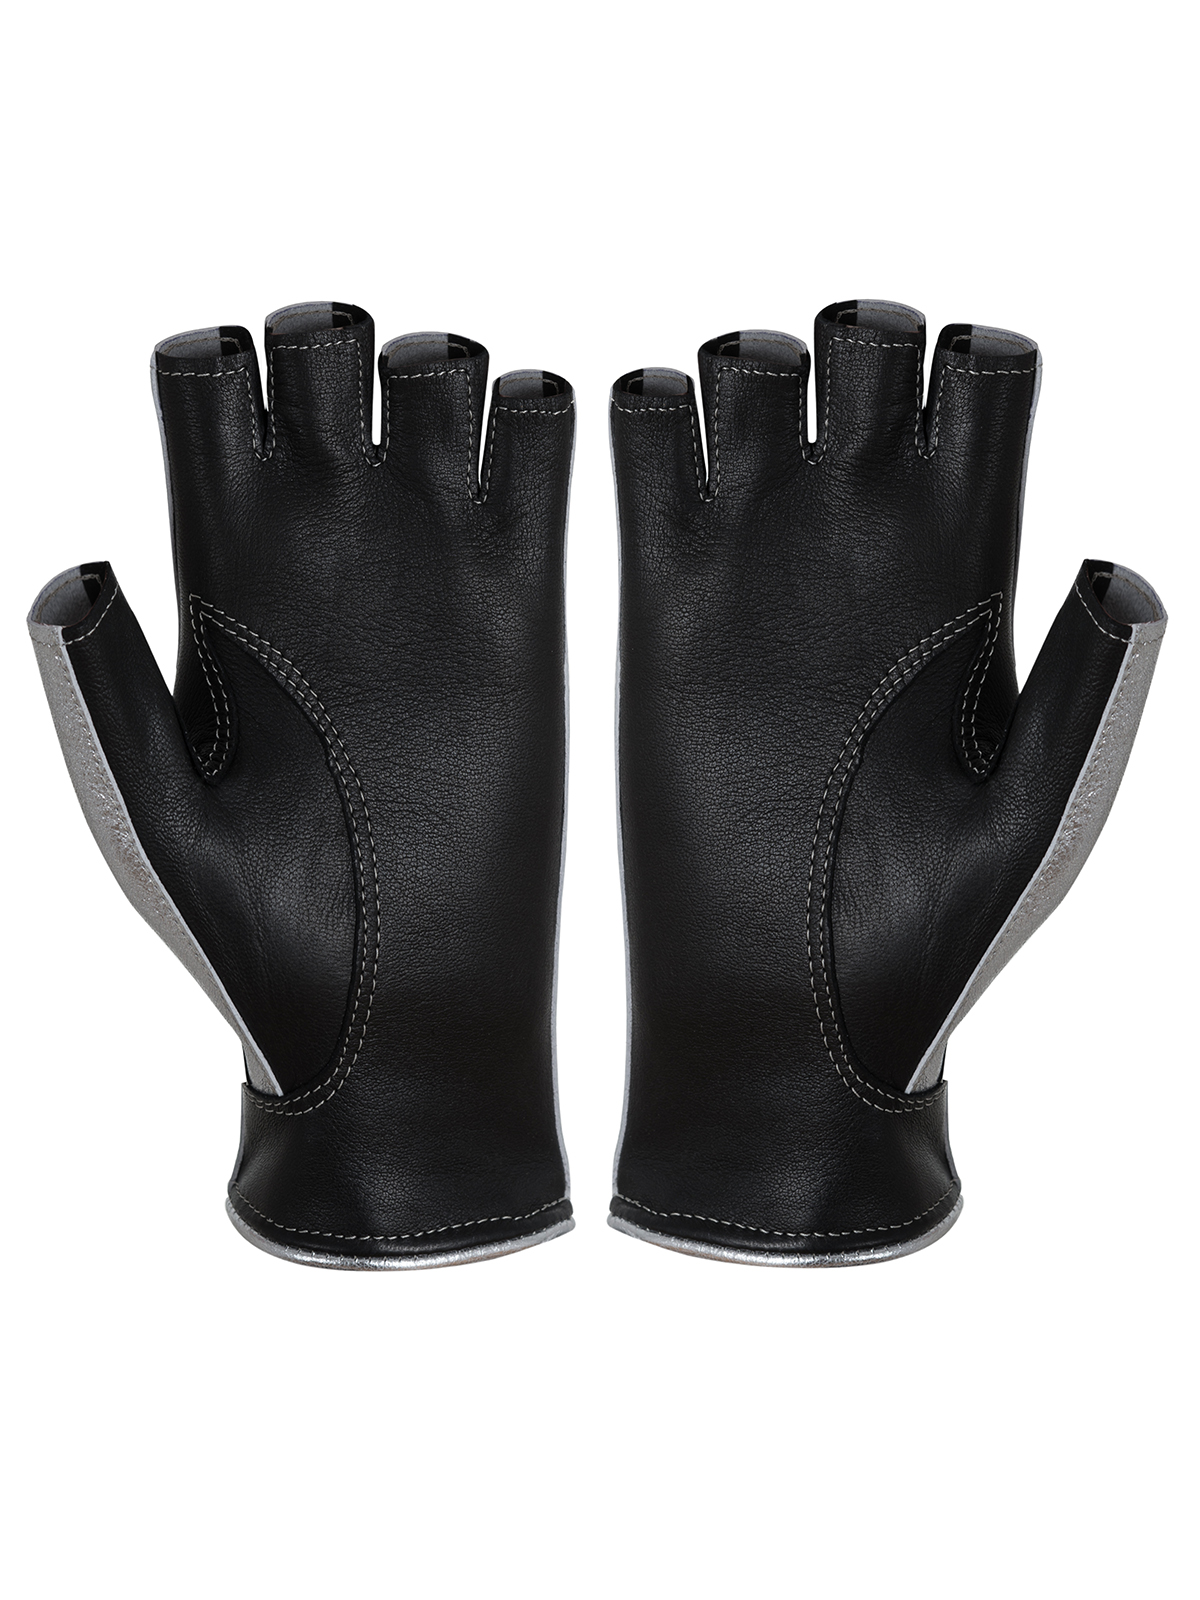 Patent leather driving gloves - Driving Gloves Driving Gloves